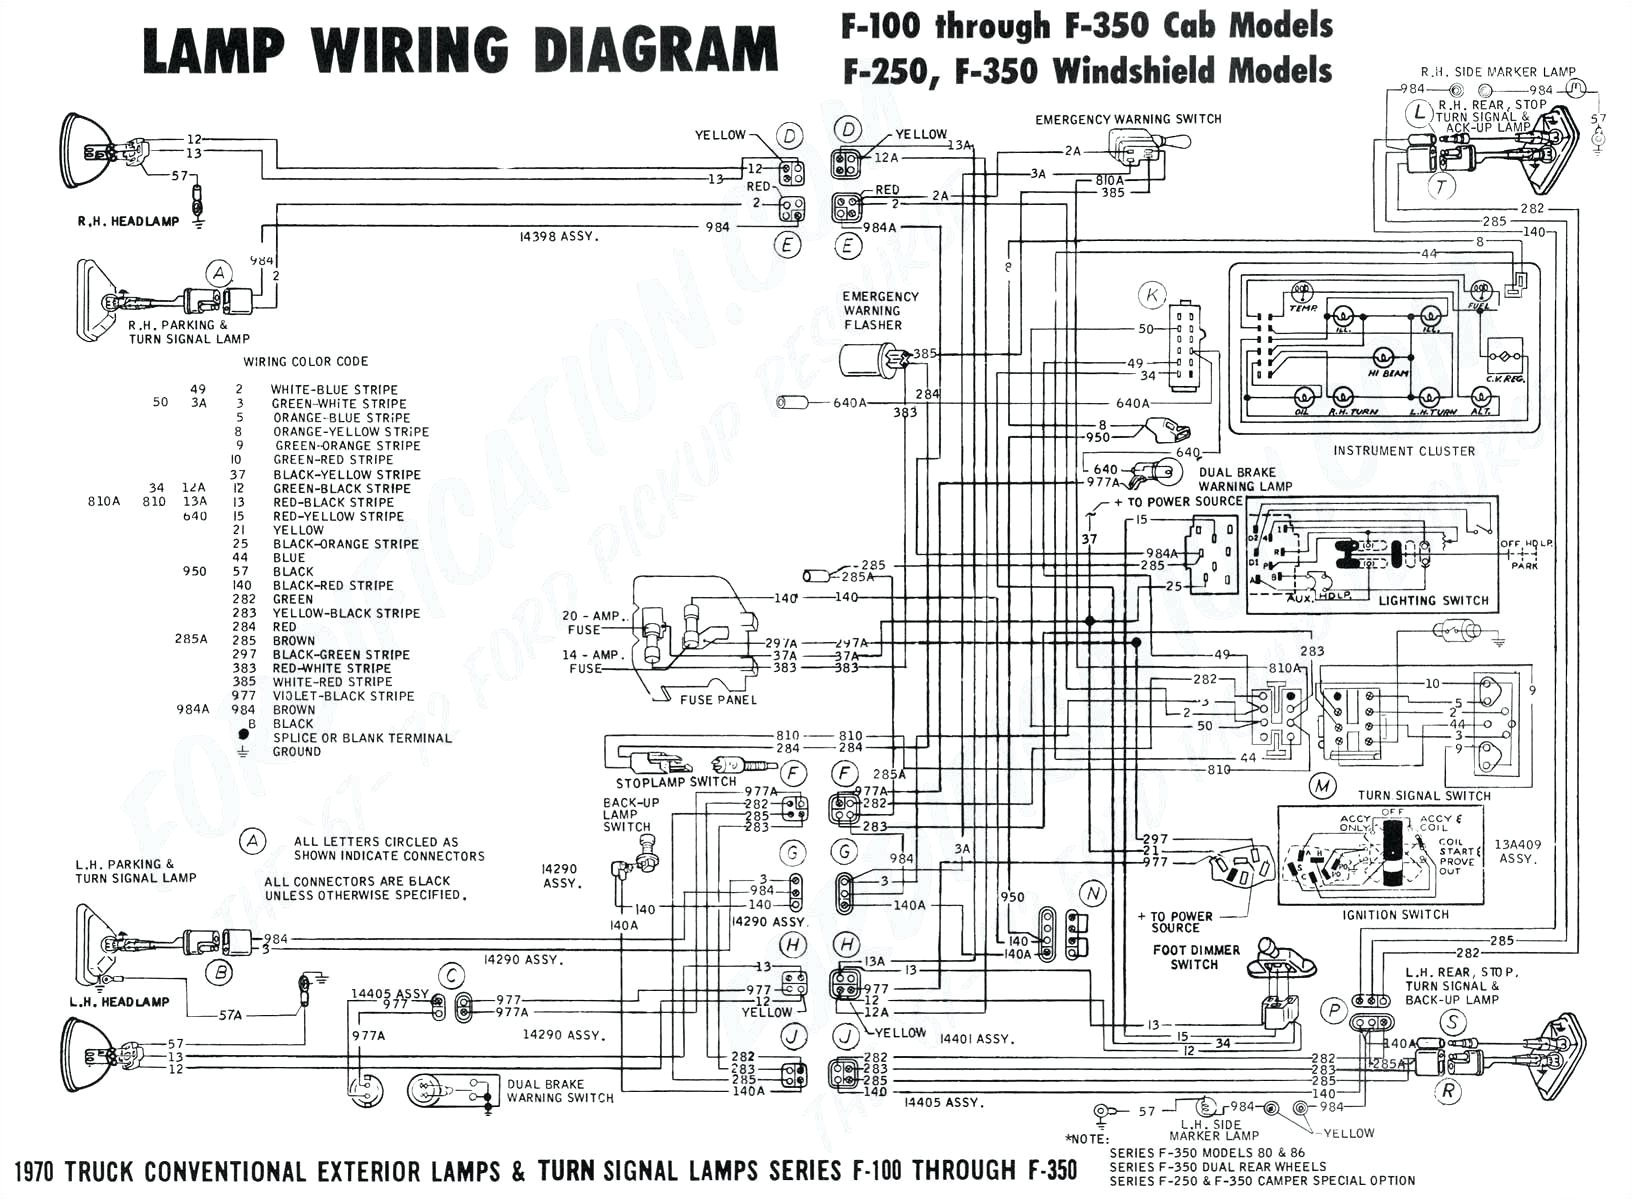 2003 ford f150 engine diagram top 2003 ford escape engine diagram picture all ford auto cars of 2003 ford f150 engine diagram jpg